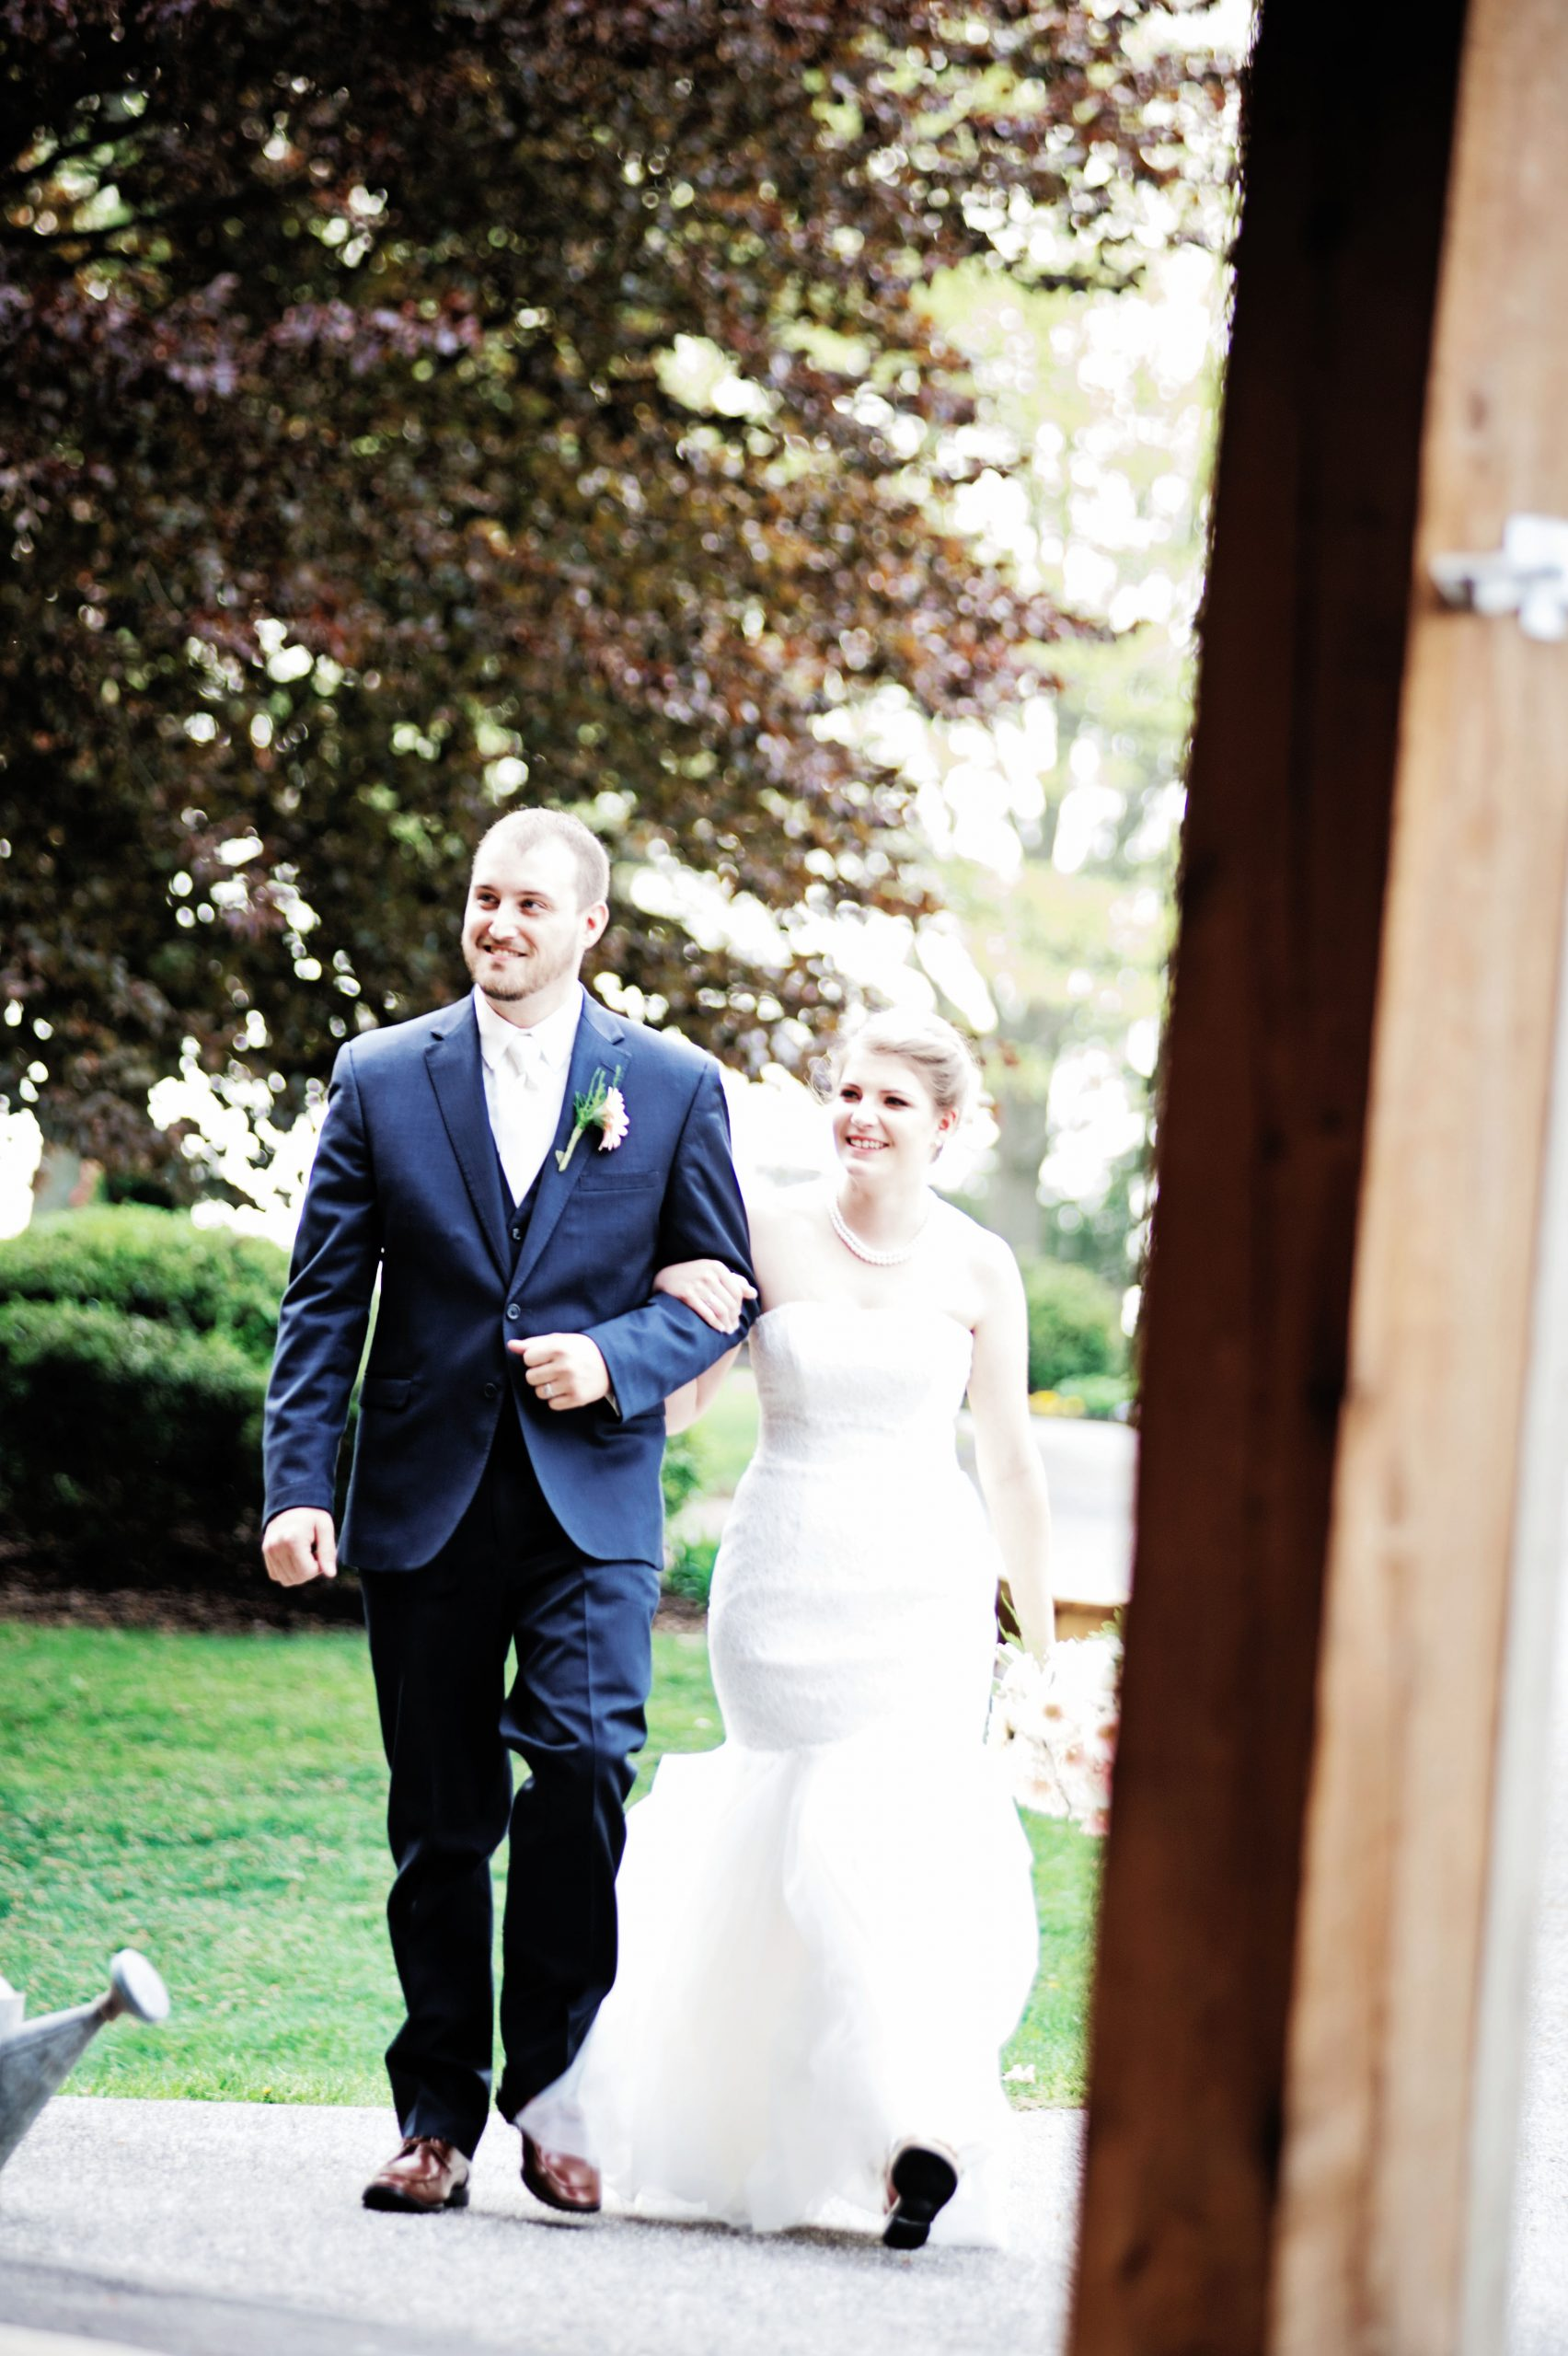 the newlyweds walk into their reception in the rustic barn at Lakeview Farms of York, PA. Lovefusion caught this iconic moment for the couple to remember forever. Featured on Dream Weddings.